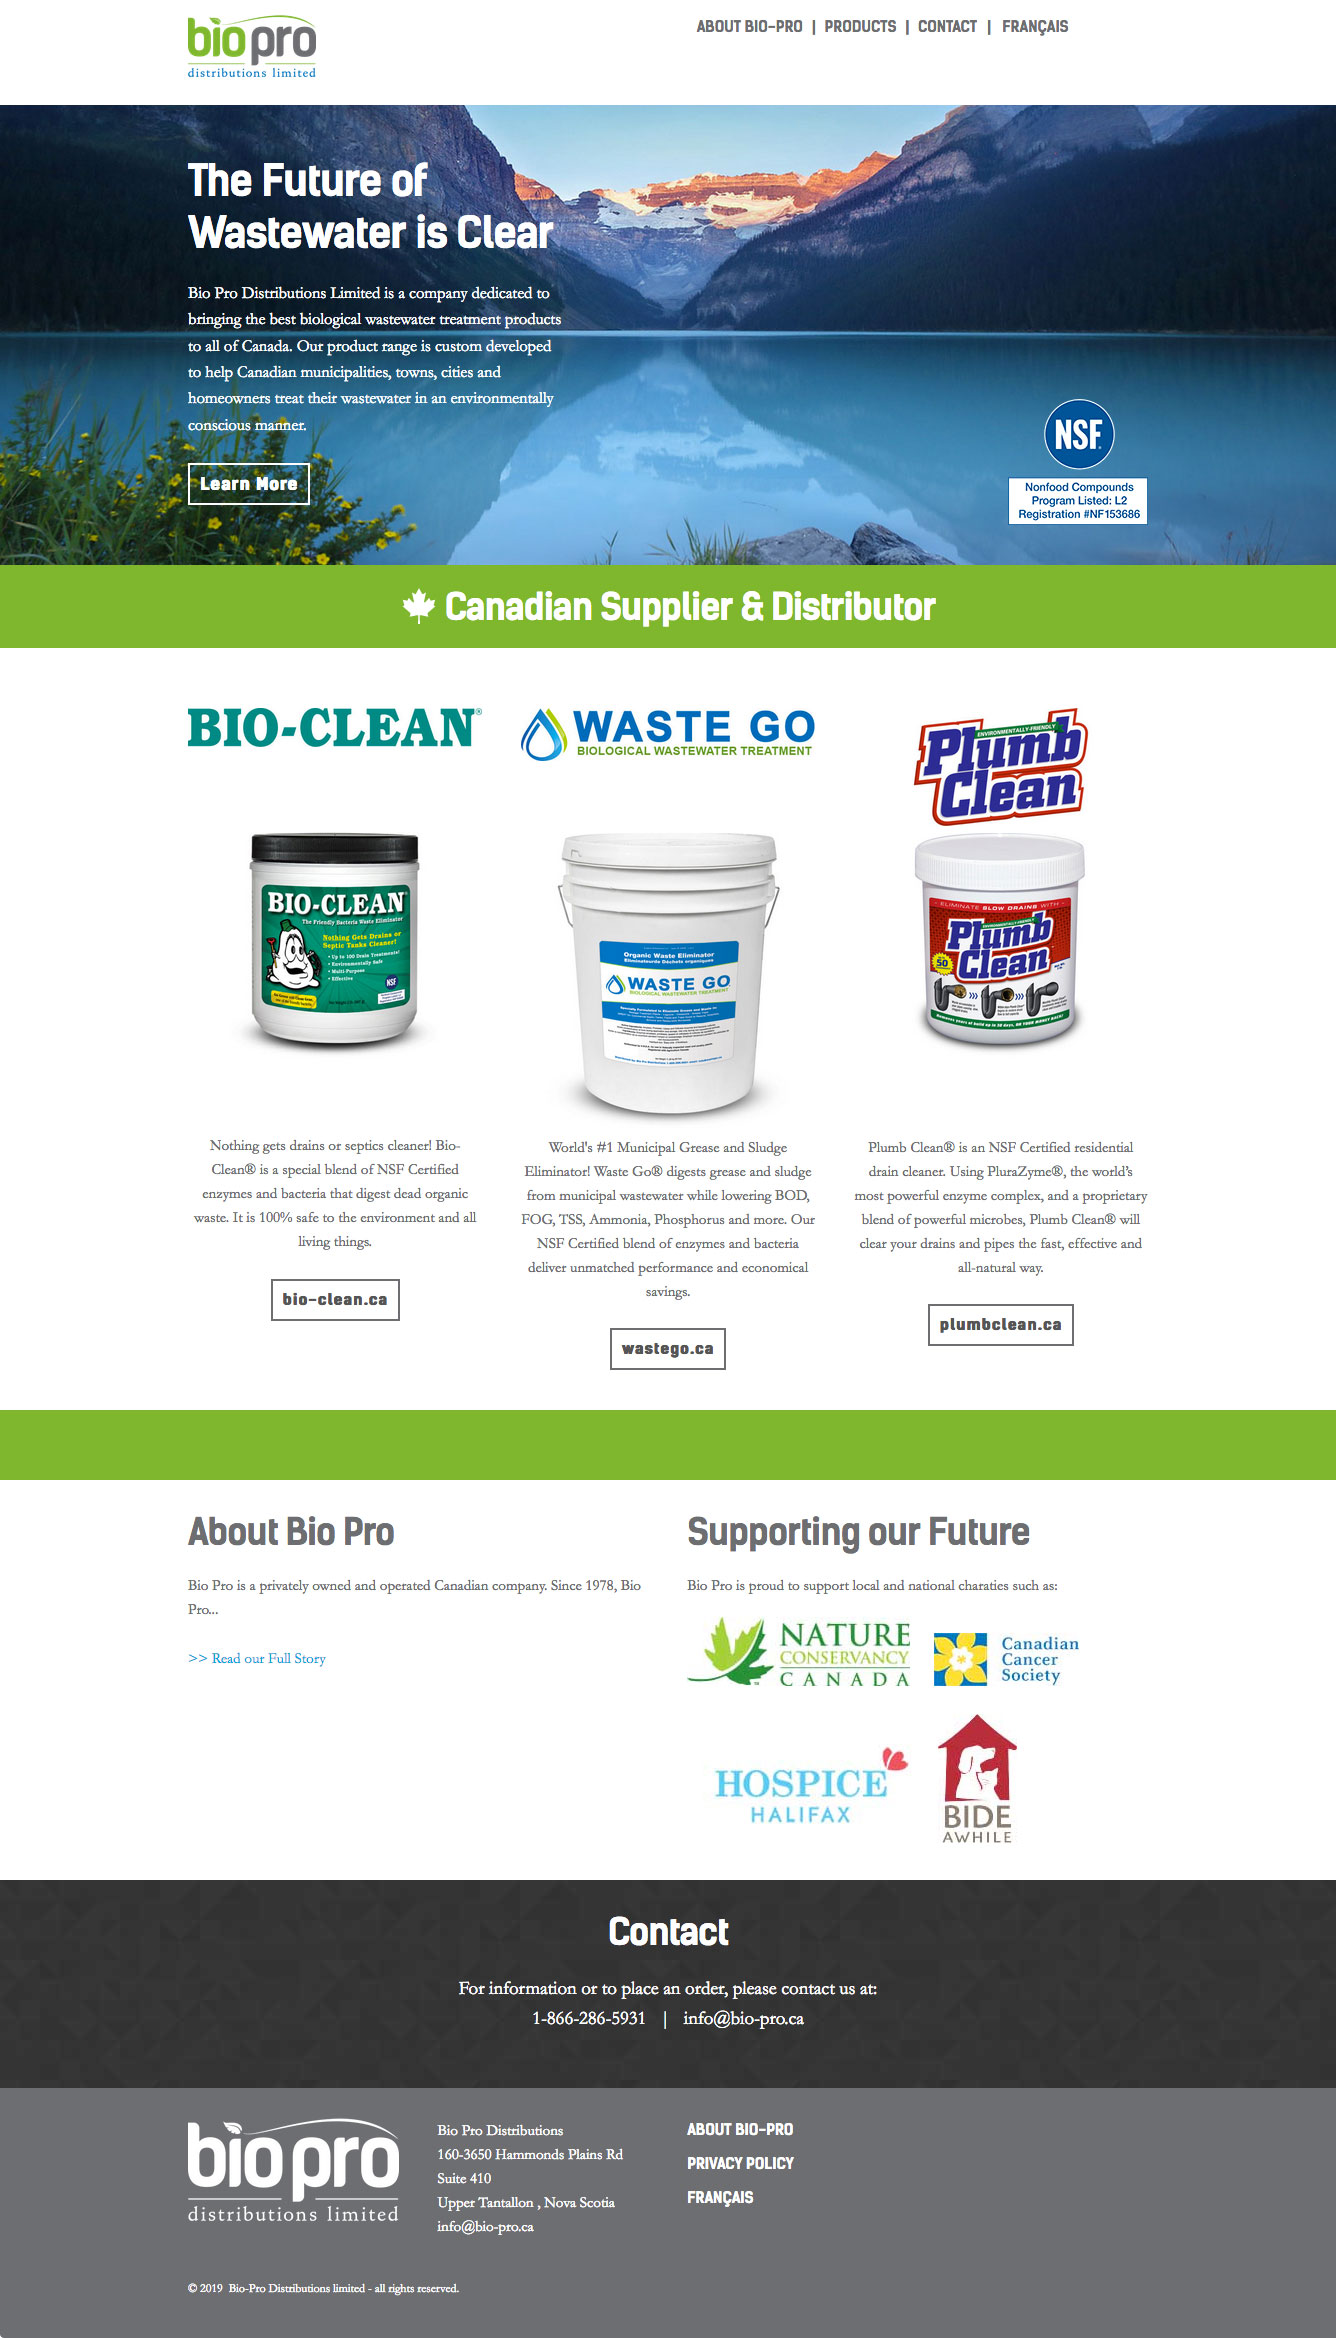 Bio-Pro Distributions Front Page